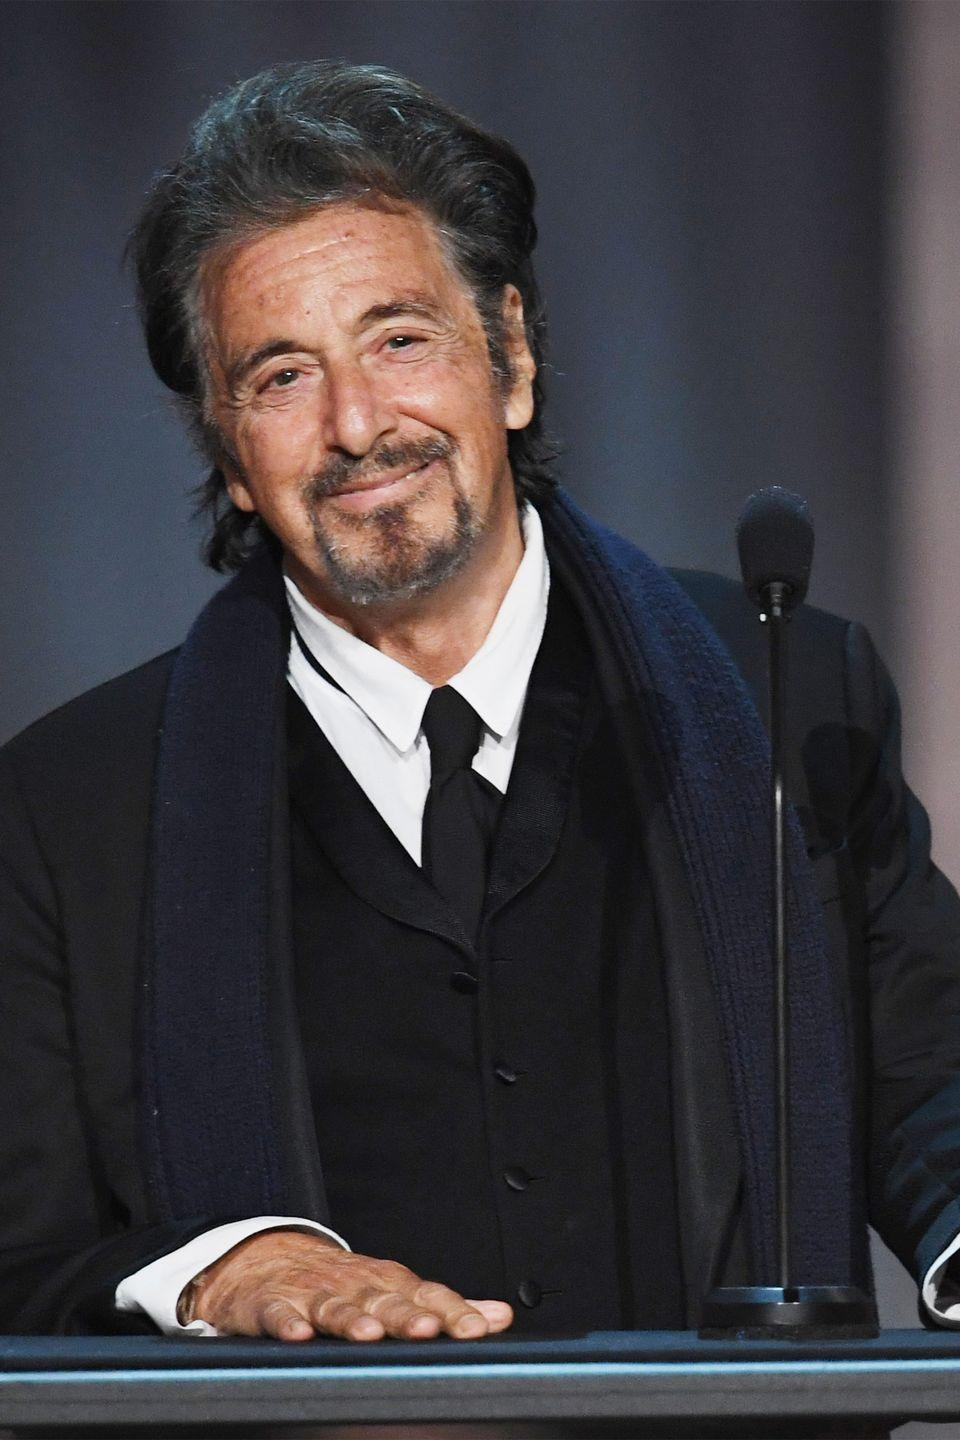 """<p>The Oscar winner attended the High School of the Performing Arts in New York City, where he <a href=""""https://www.businessinsider.com/celebrity-high-school-dropouts-2012-4#lindsay-lohan-7"""" rel=""""nofollow noopener"""" target=""""_blank"""" data-ylk=""""slk:reportedly struggled"""" class=""""link rapid-noclick-resp"""">reportedly struggled</a> in everything but English. Realizing that all he wanted to do was act, he soon dropped out and pursued his career. </p>"""